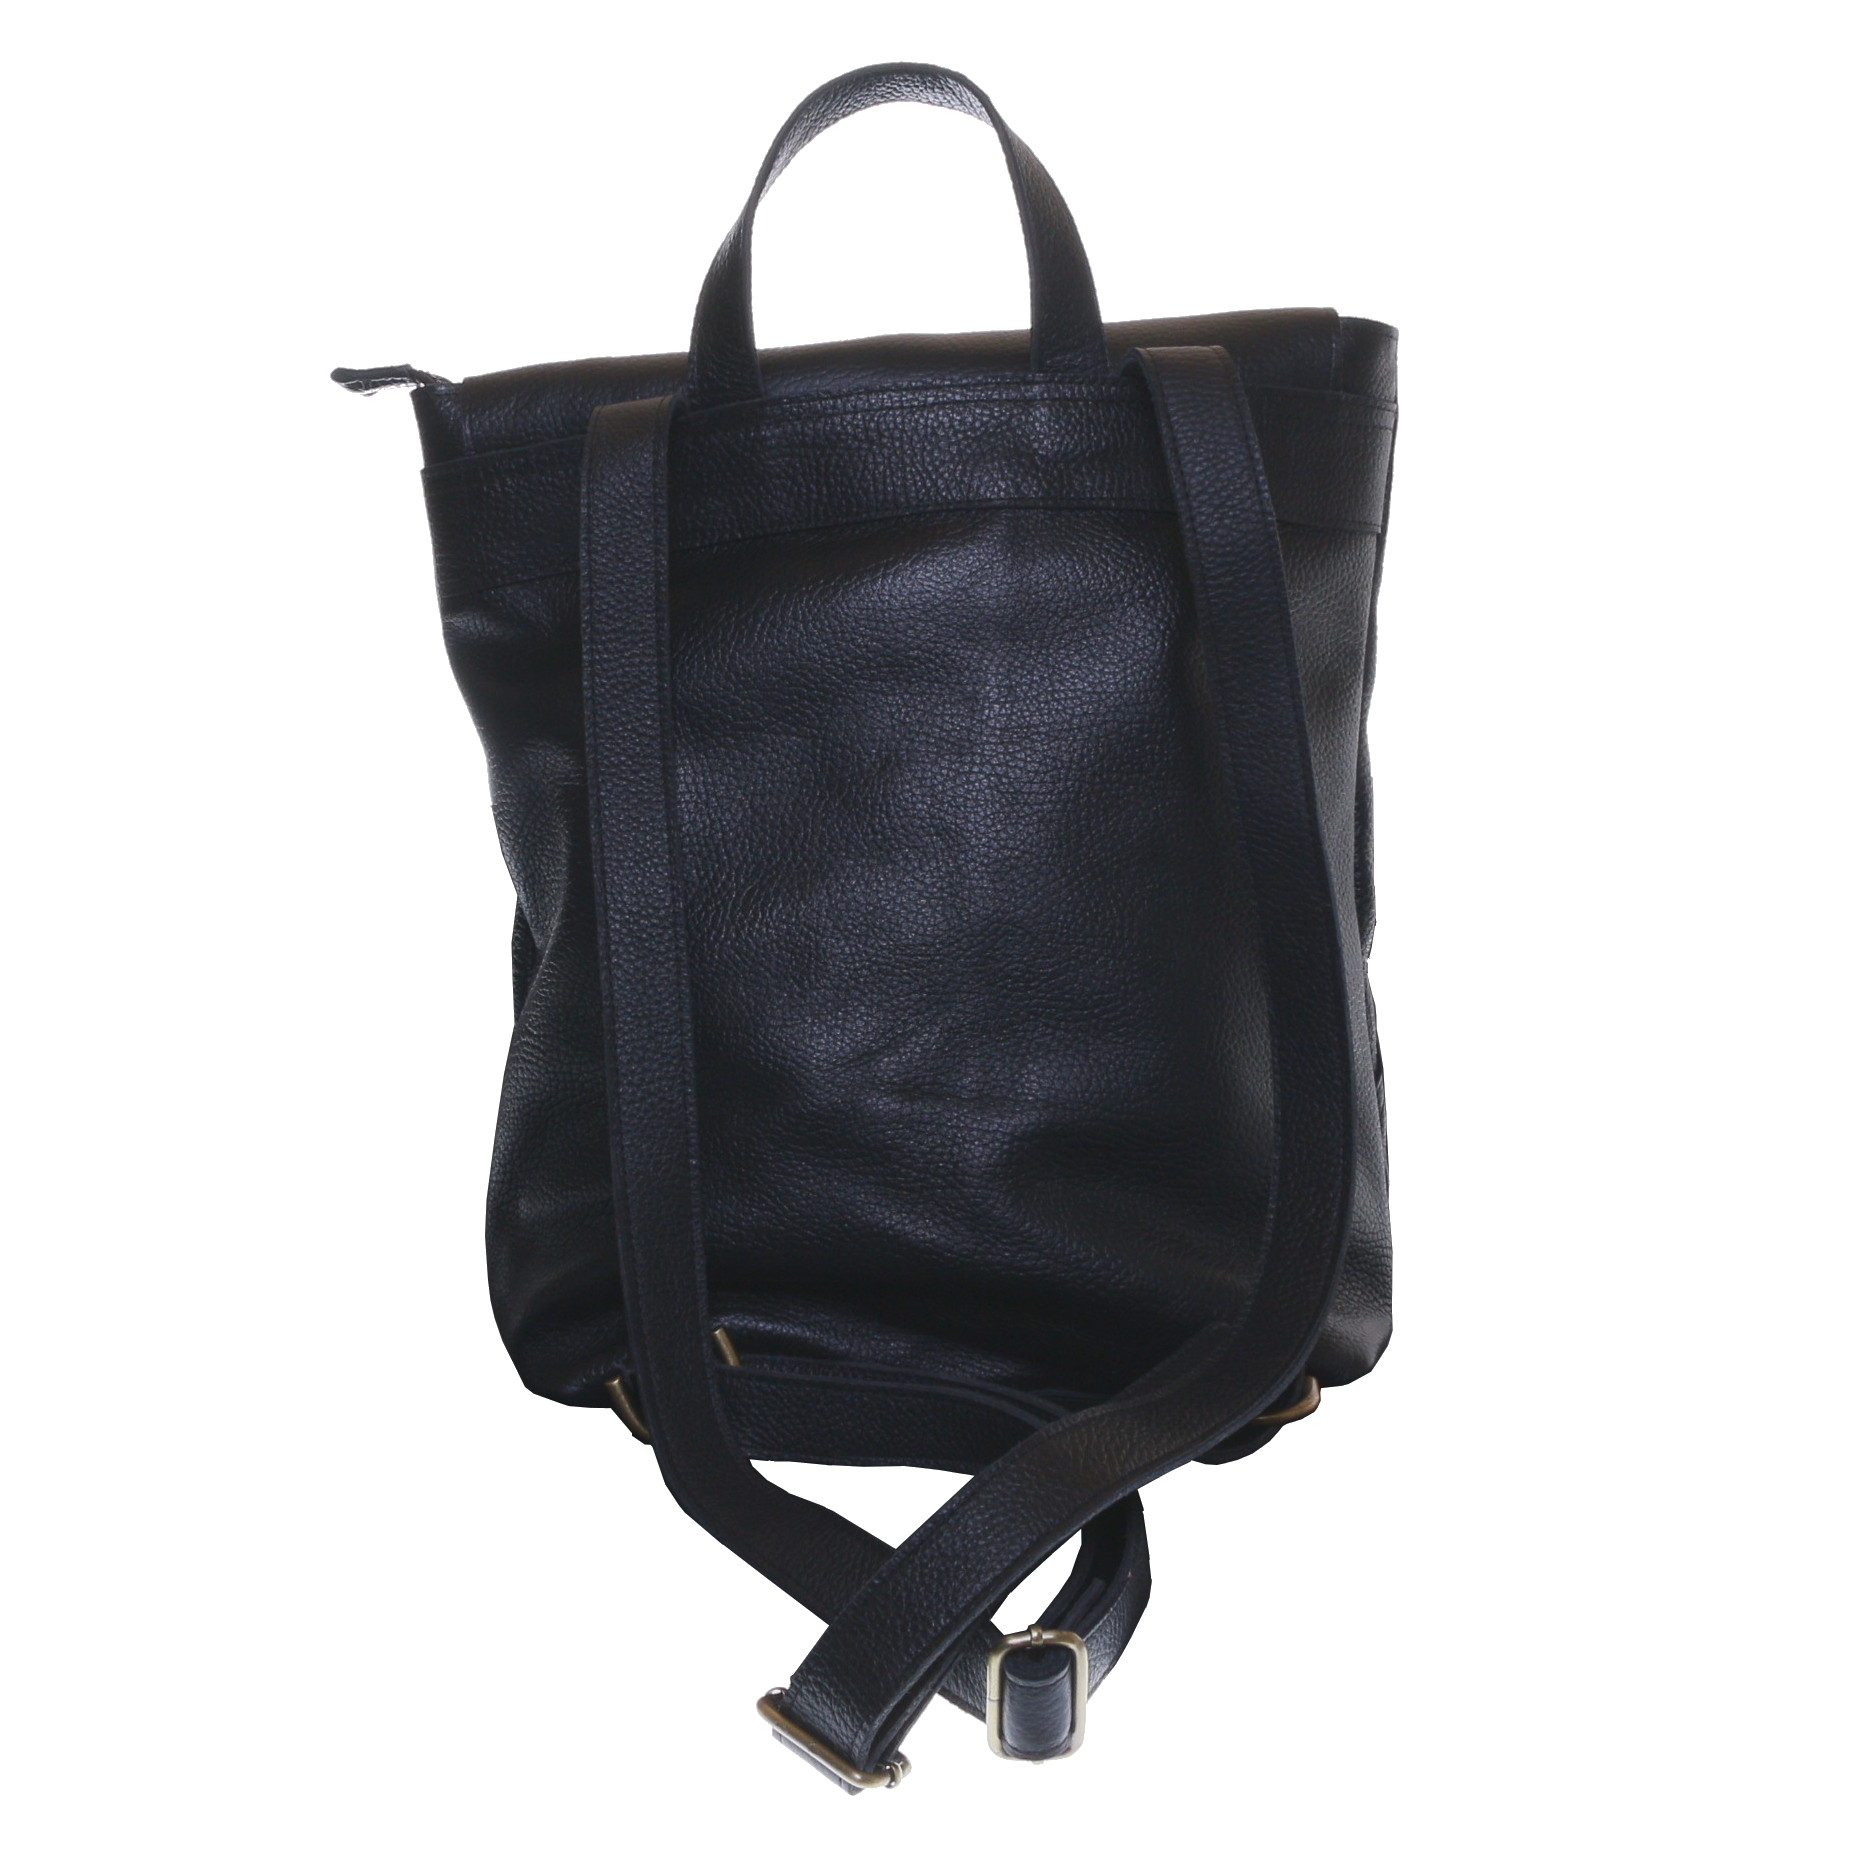 Gundara - laptop backpack - genuine cow leather from Ethiopia - handmade